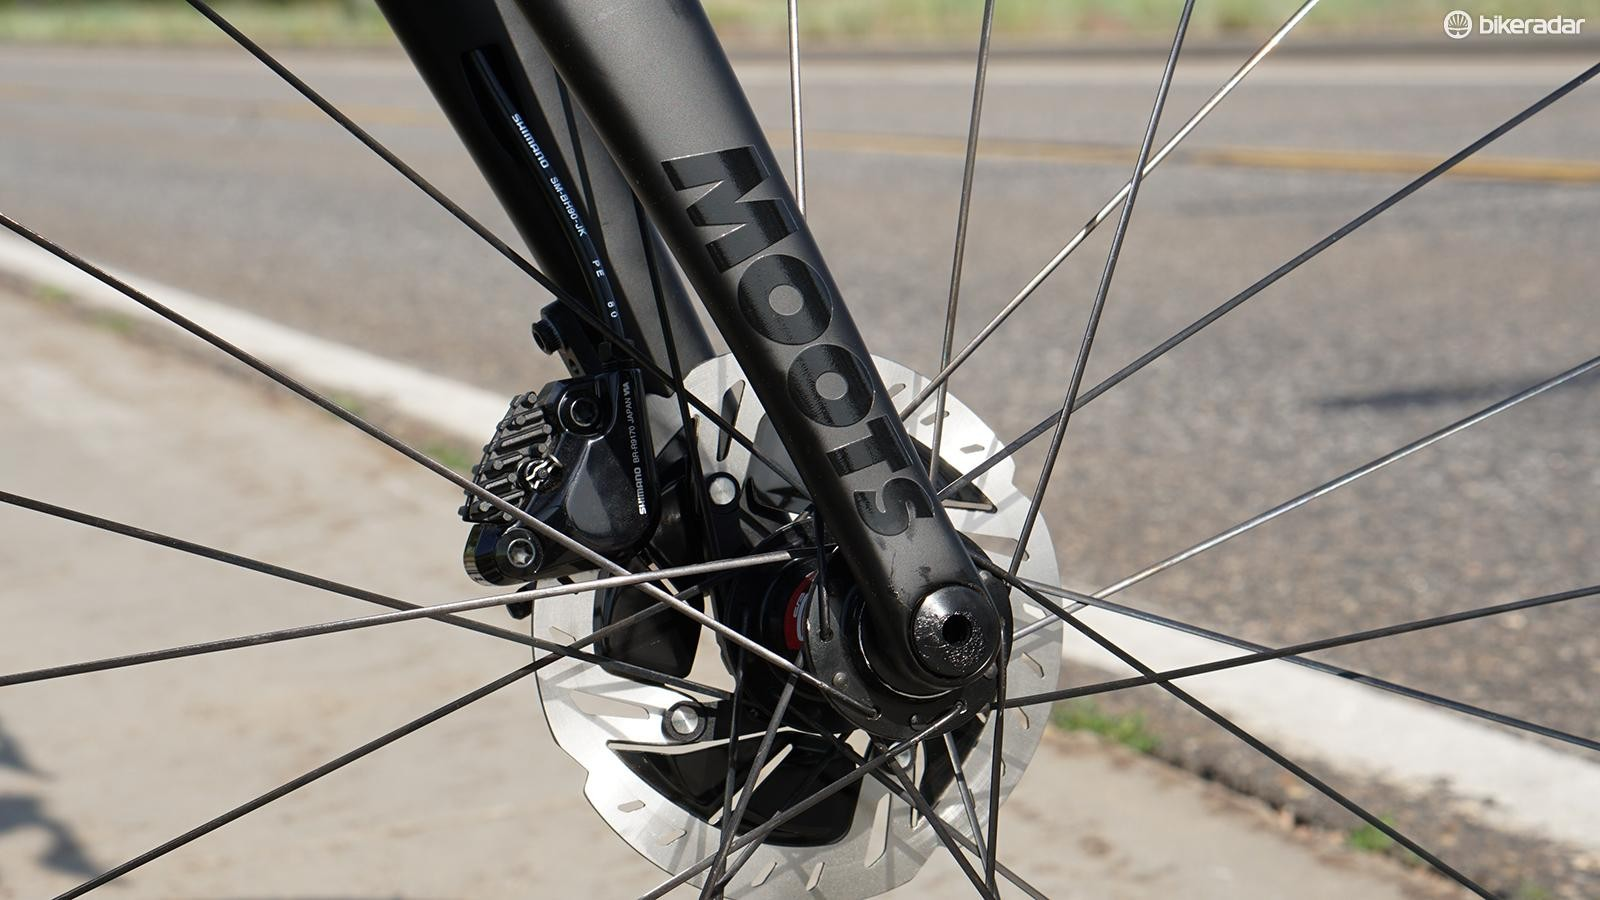 Thru-axles front and rear, which is now established as the standard for road disc bikes